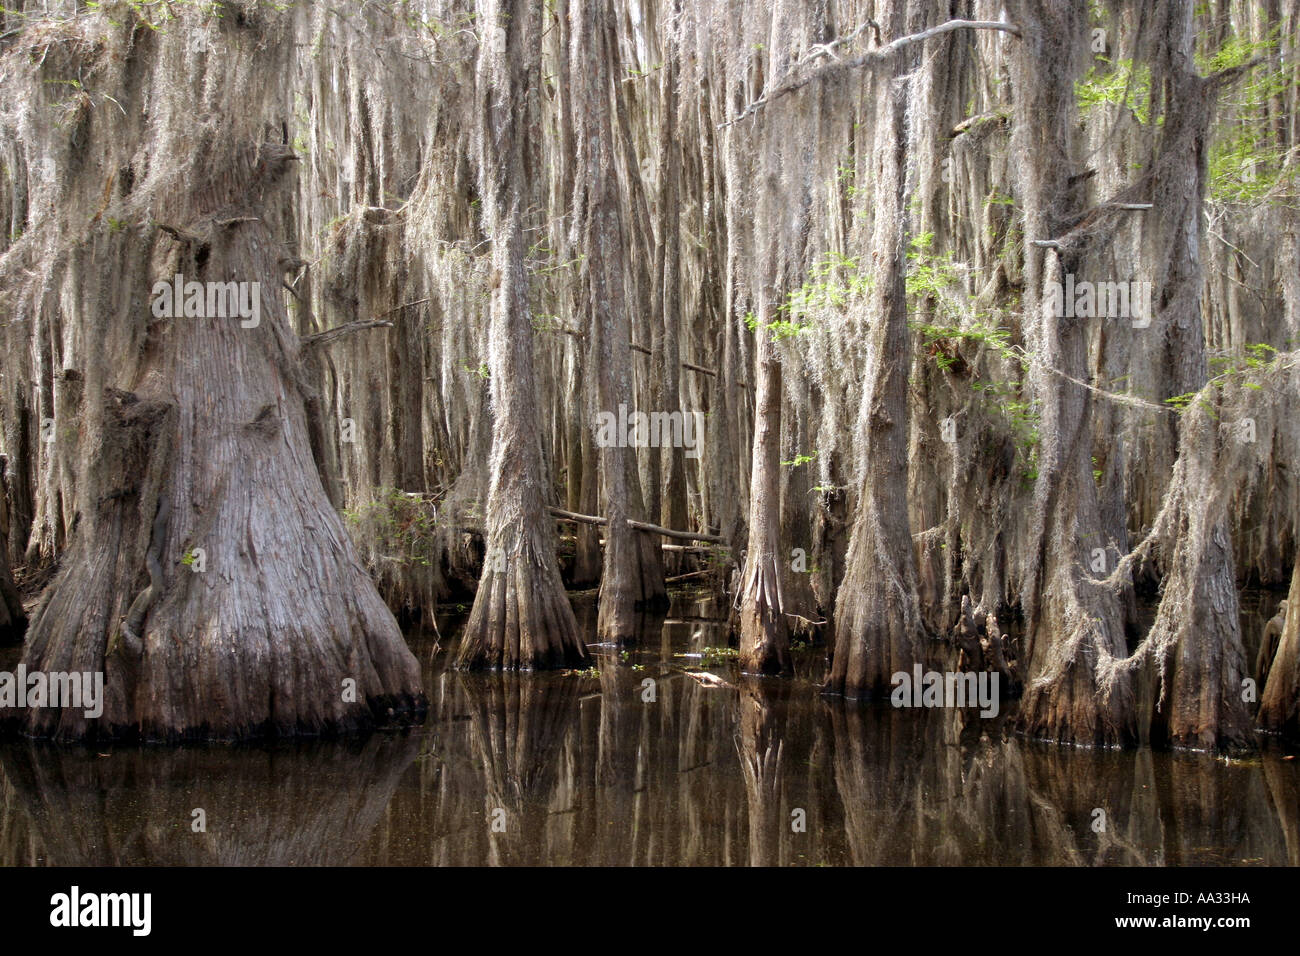 how to say swamp in spanish